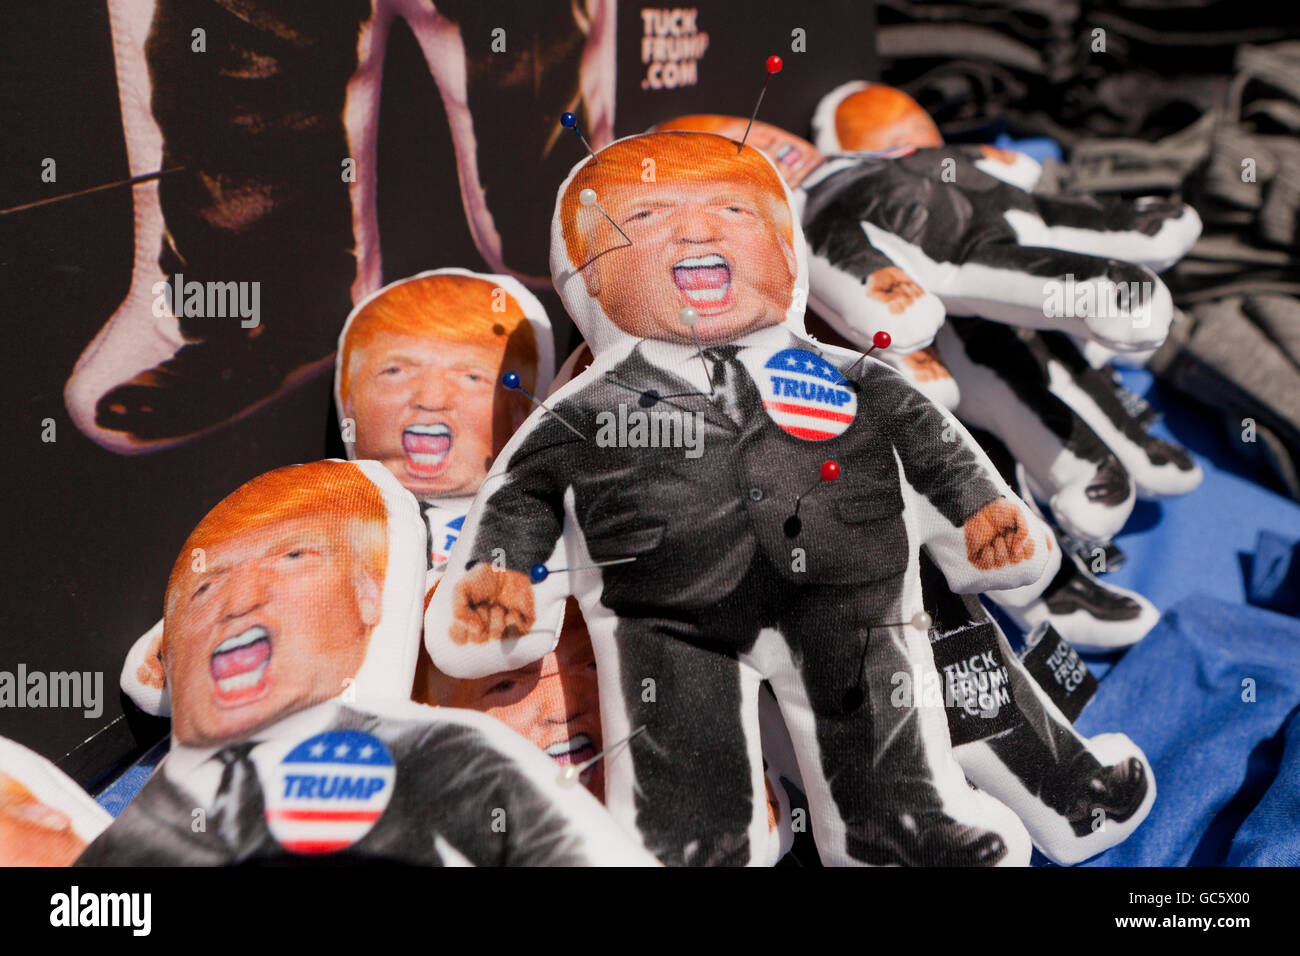 Donald Trump voodoo dolls on sale - USA - Stock Image